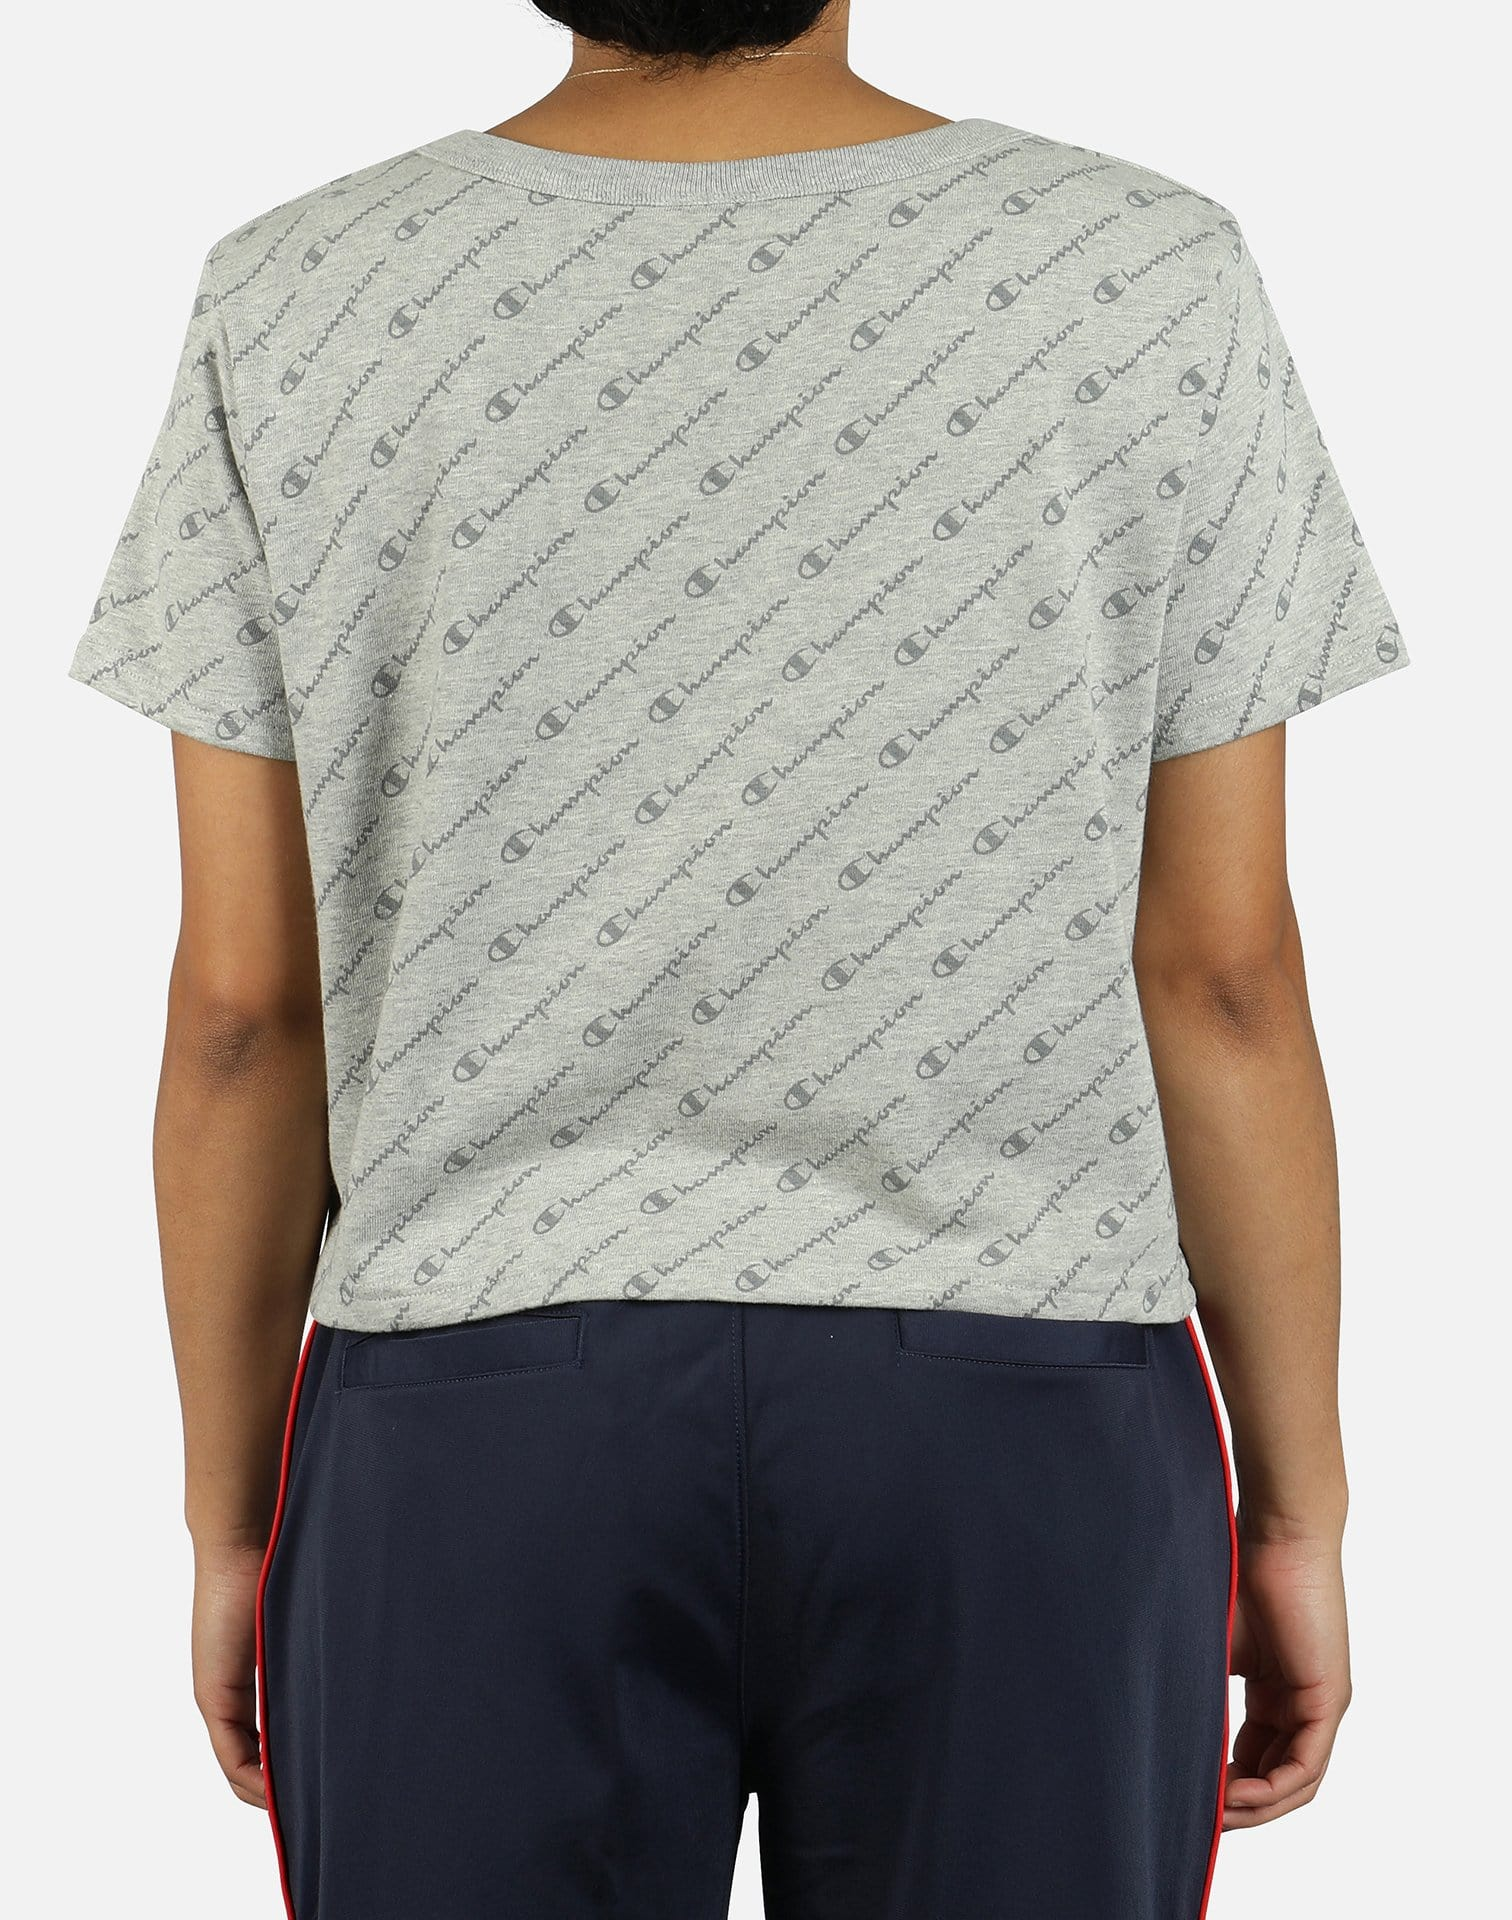 Champion Women's All Over Print Cropped Tee